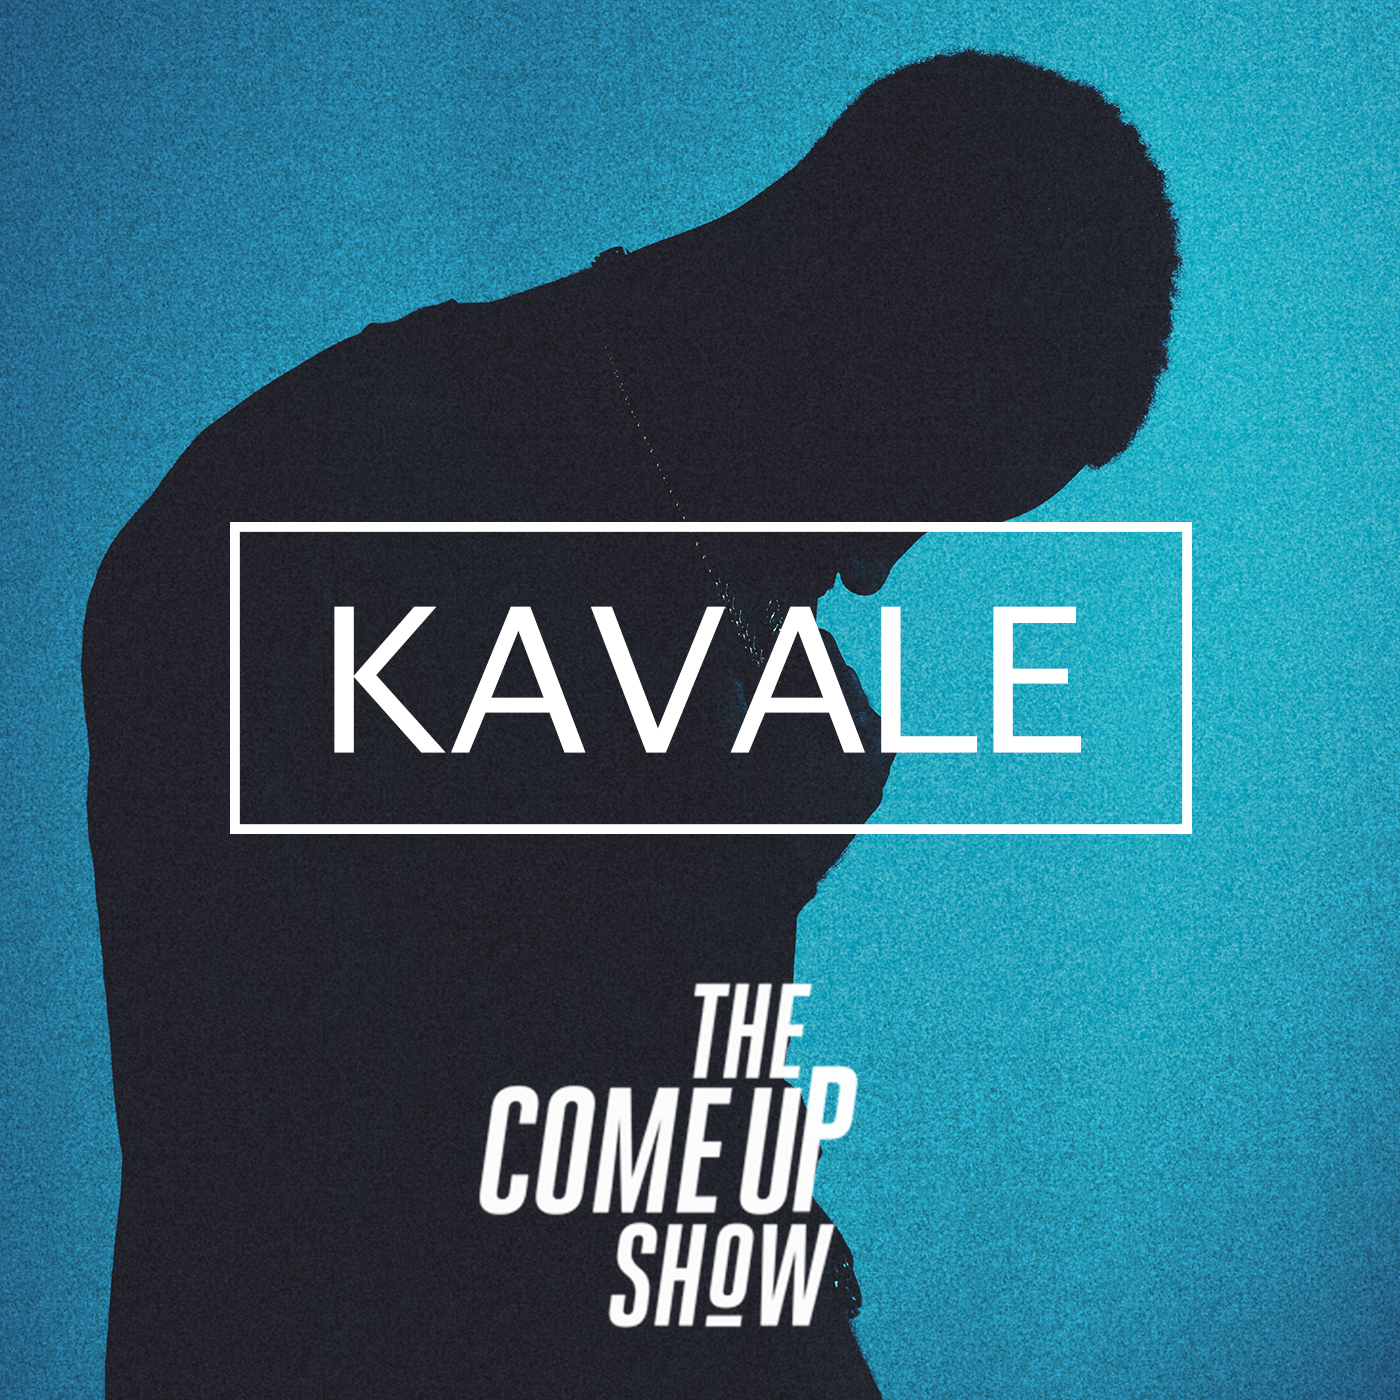 kavale on the come up show